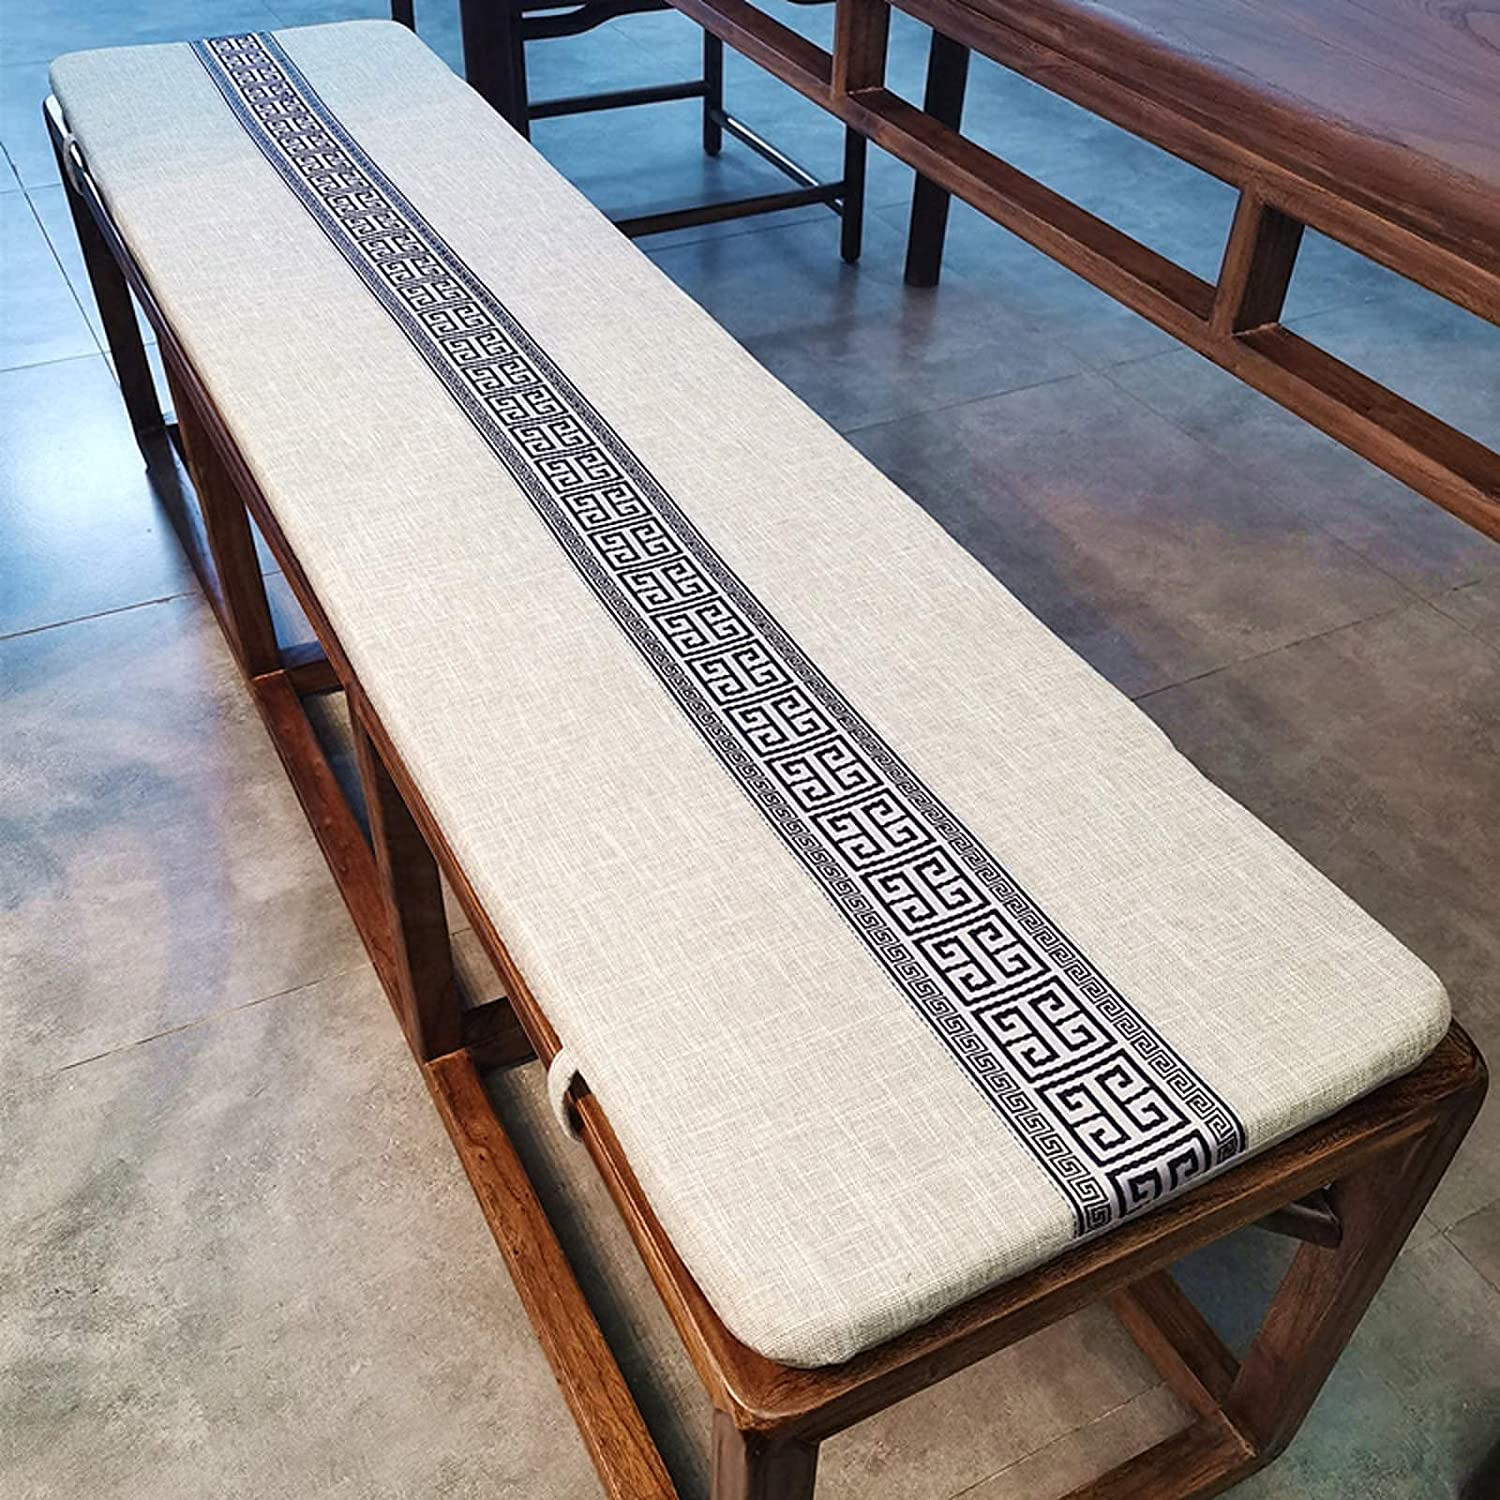 CJCSM Indoor San Diego Mall and Outdoor Non-Slip Limited price sale Thick Cushi Bench Cushion Foam